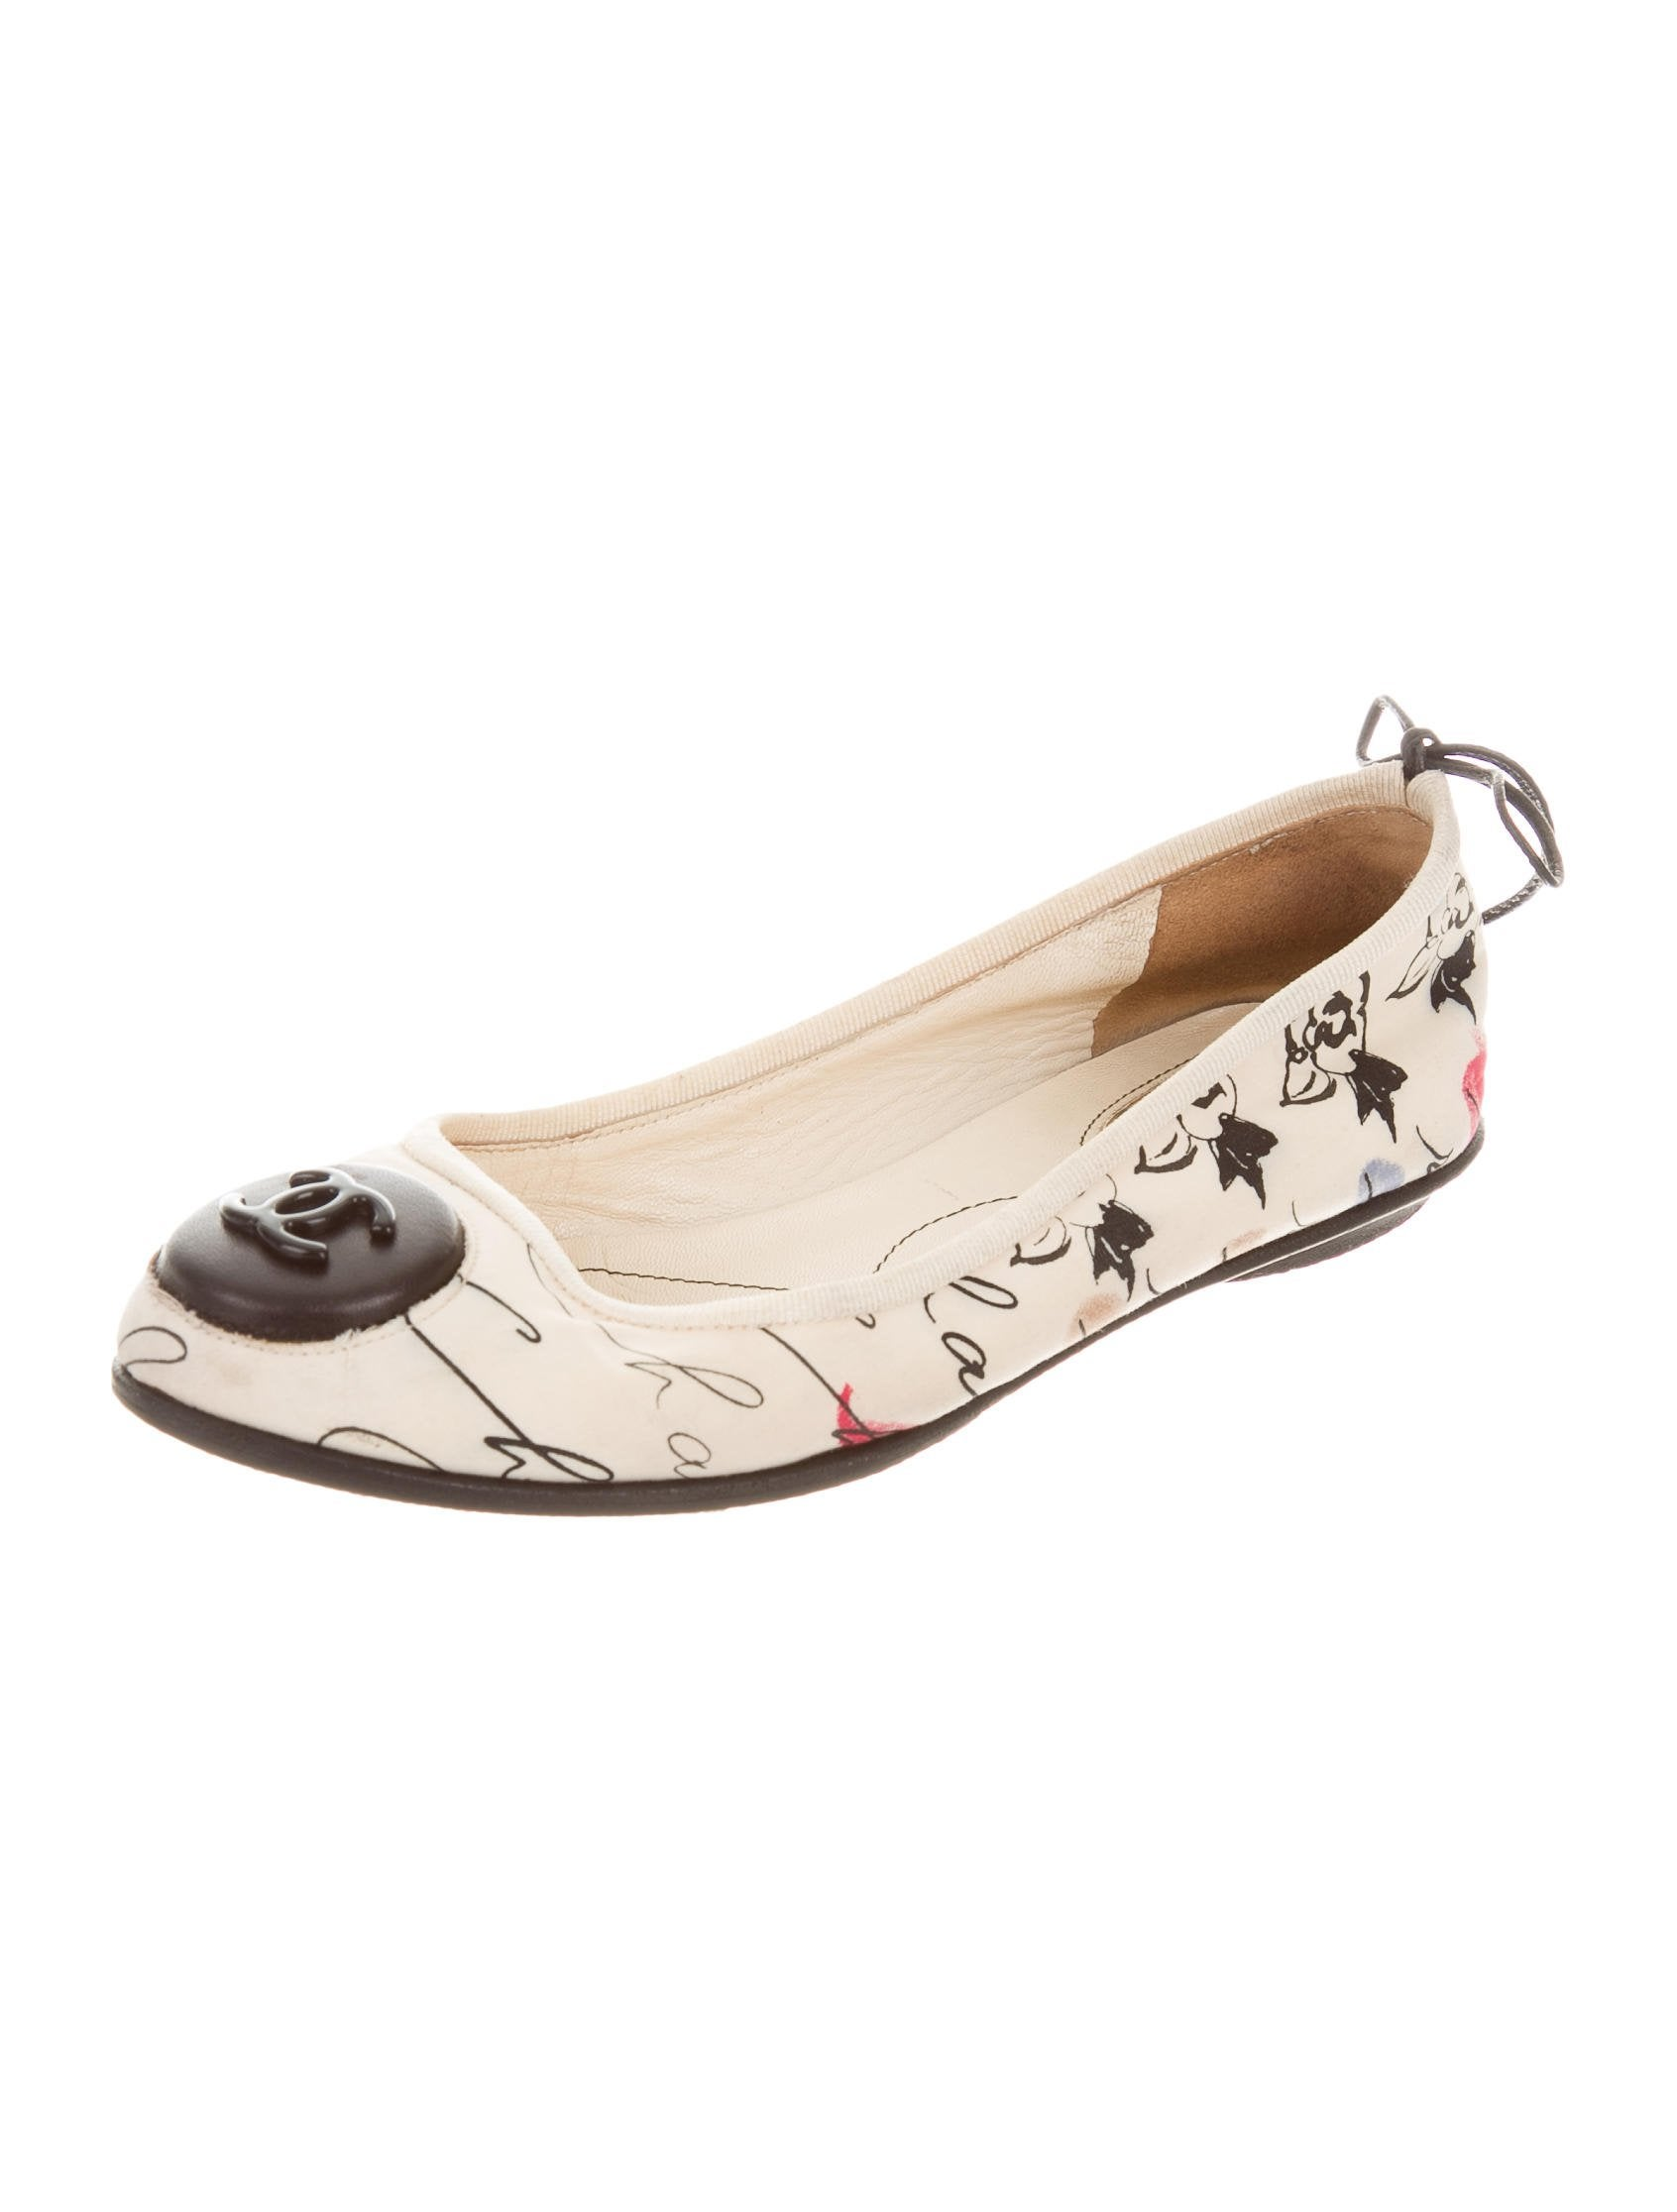 chanel canvas cc flats shoes cha187637 the realreal